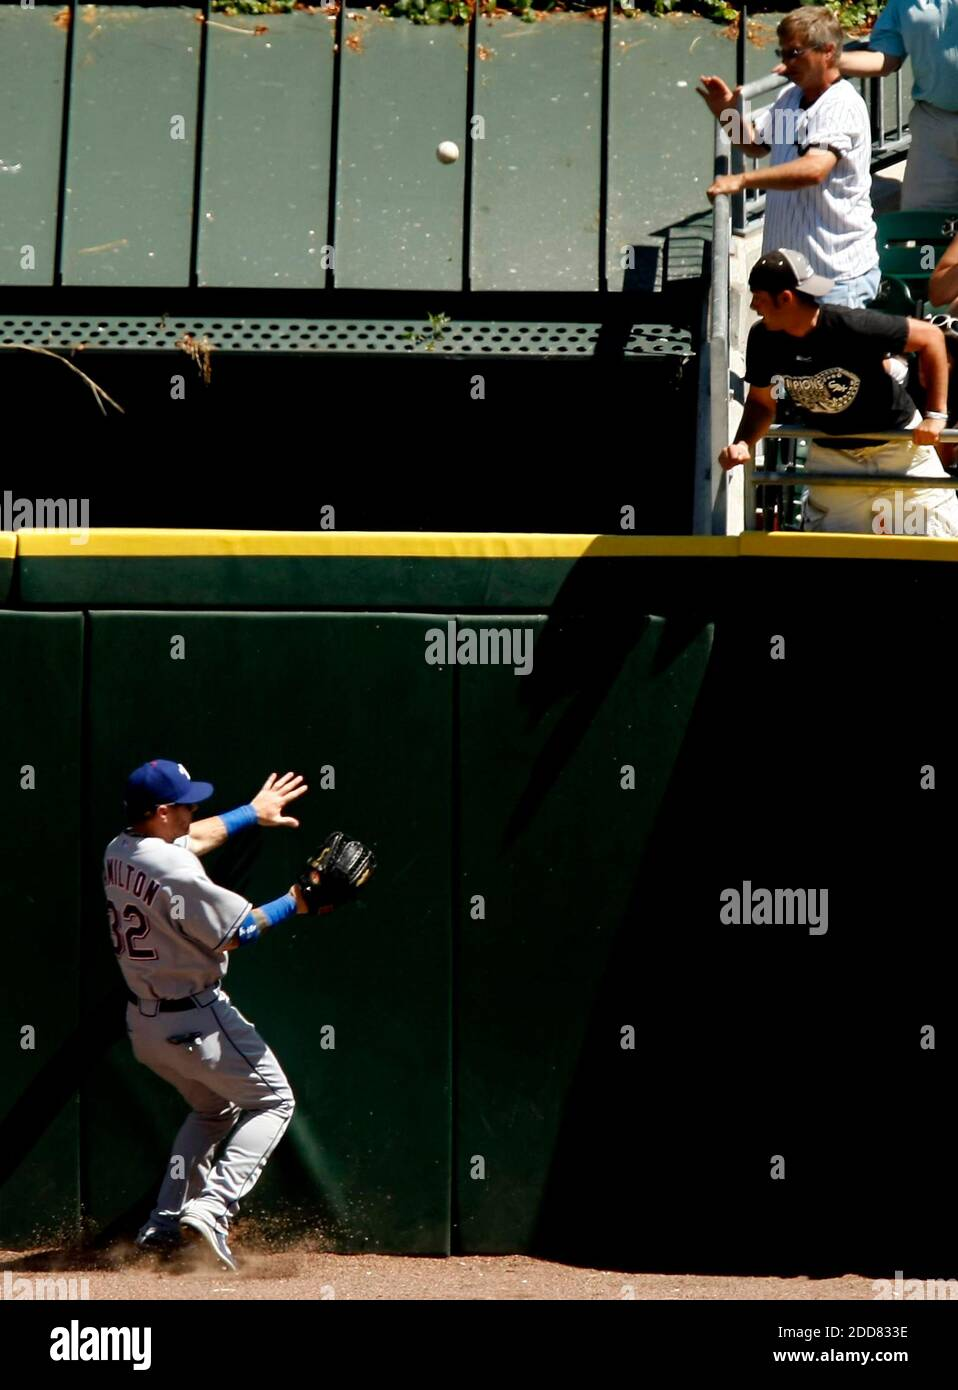 Texas Rangers center fielder Josh Hamilton can't catch up with a solo home run by the Chicago White Sox's Carlos Quentins in the fifth inning. The White Sox defeated the Rangers, 10-8, at U.S. Cellular Field in Chicago, IL, USA on July 23, 2008. Photo by Phil Velasquez/Chicago Tribune/MCT/Cameleon/ABACAPRESS.COM Stock Photo